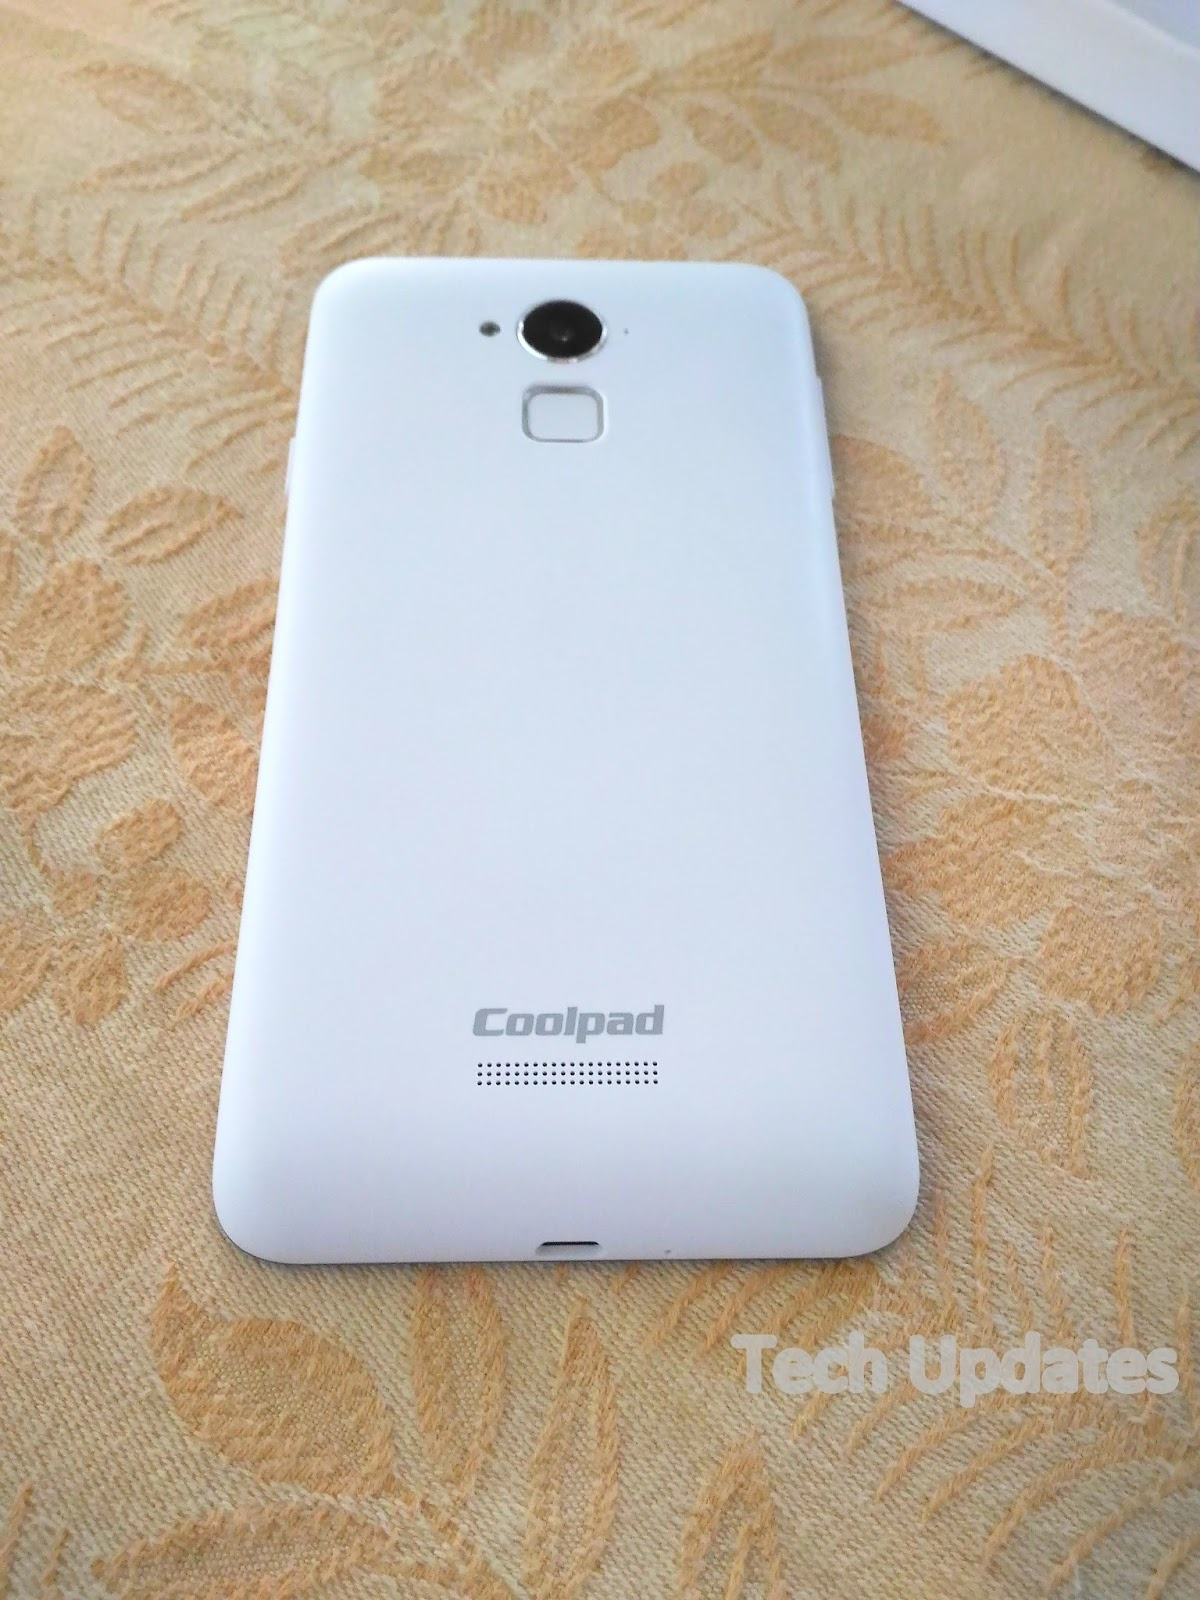 13 Indian Local Languages Support added for Coolpad Note 3